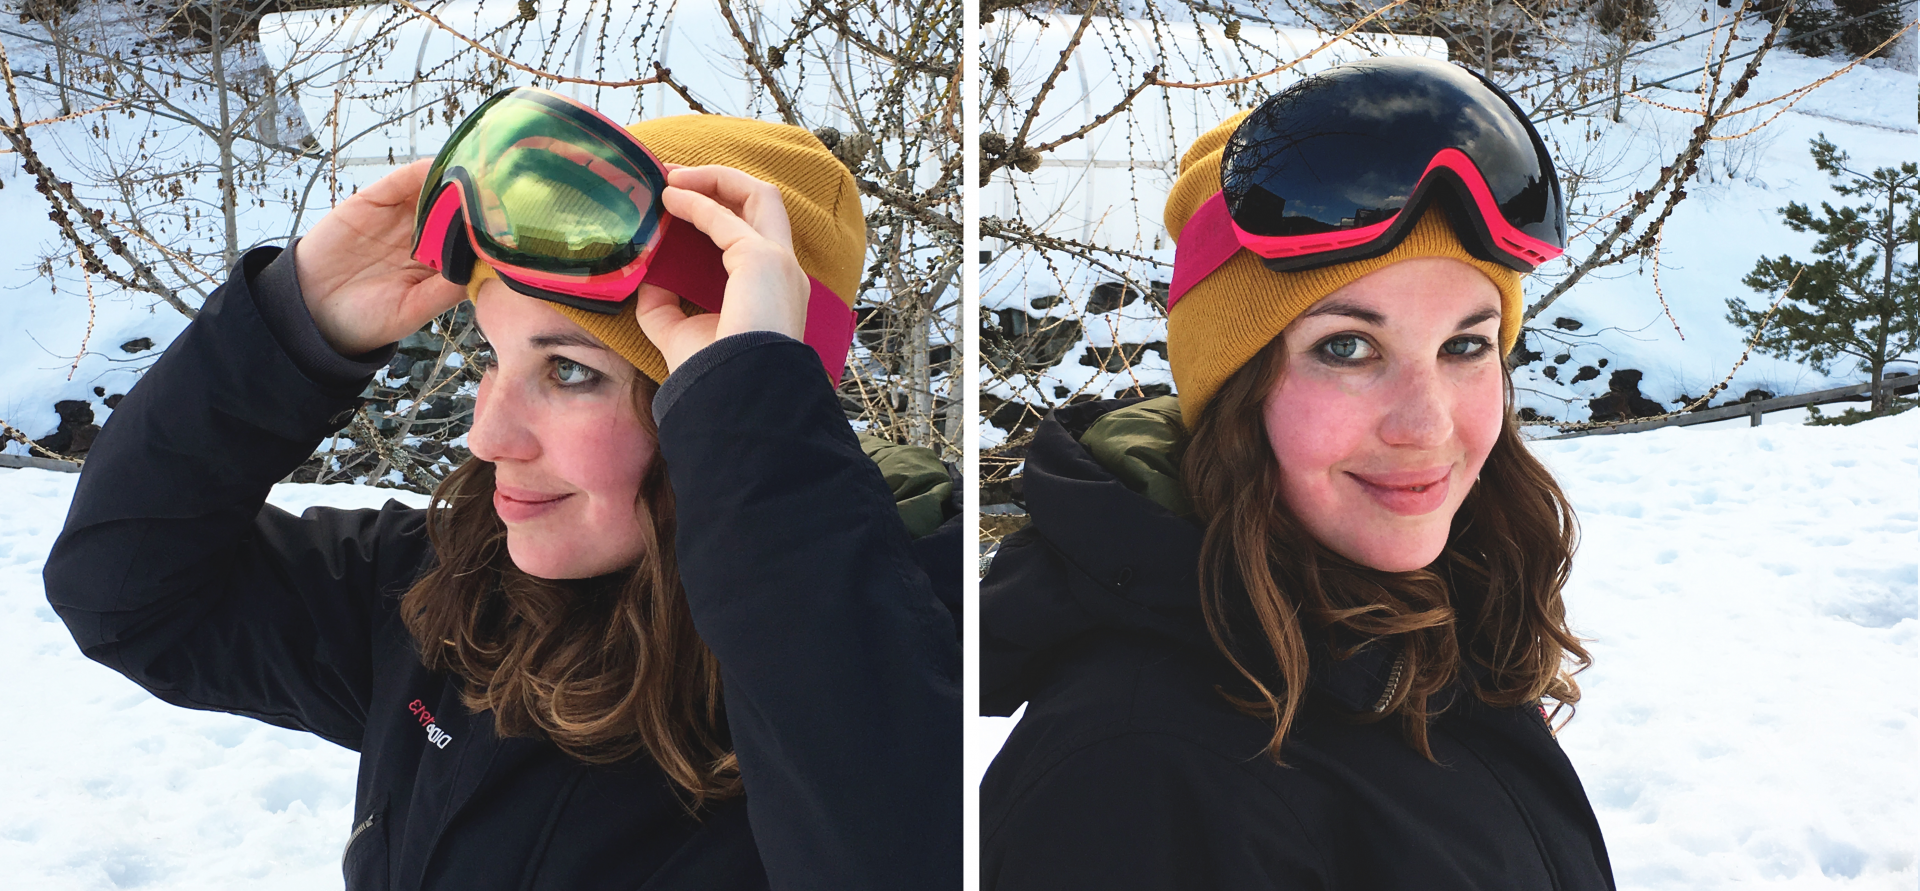 Review: Electric EG3.5 Ski Goggles from The Board Basement